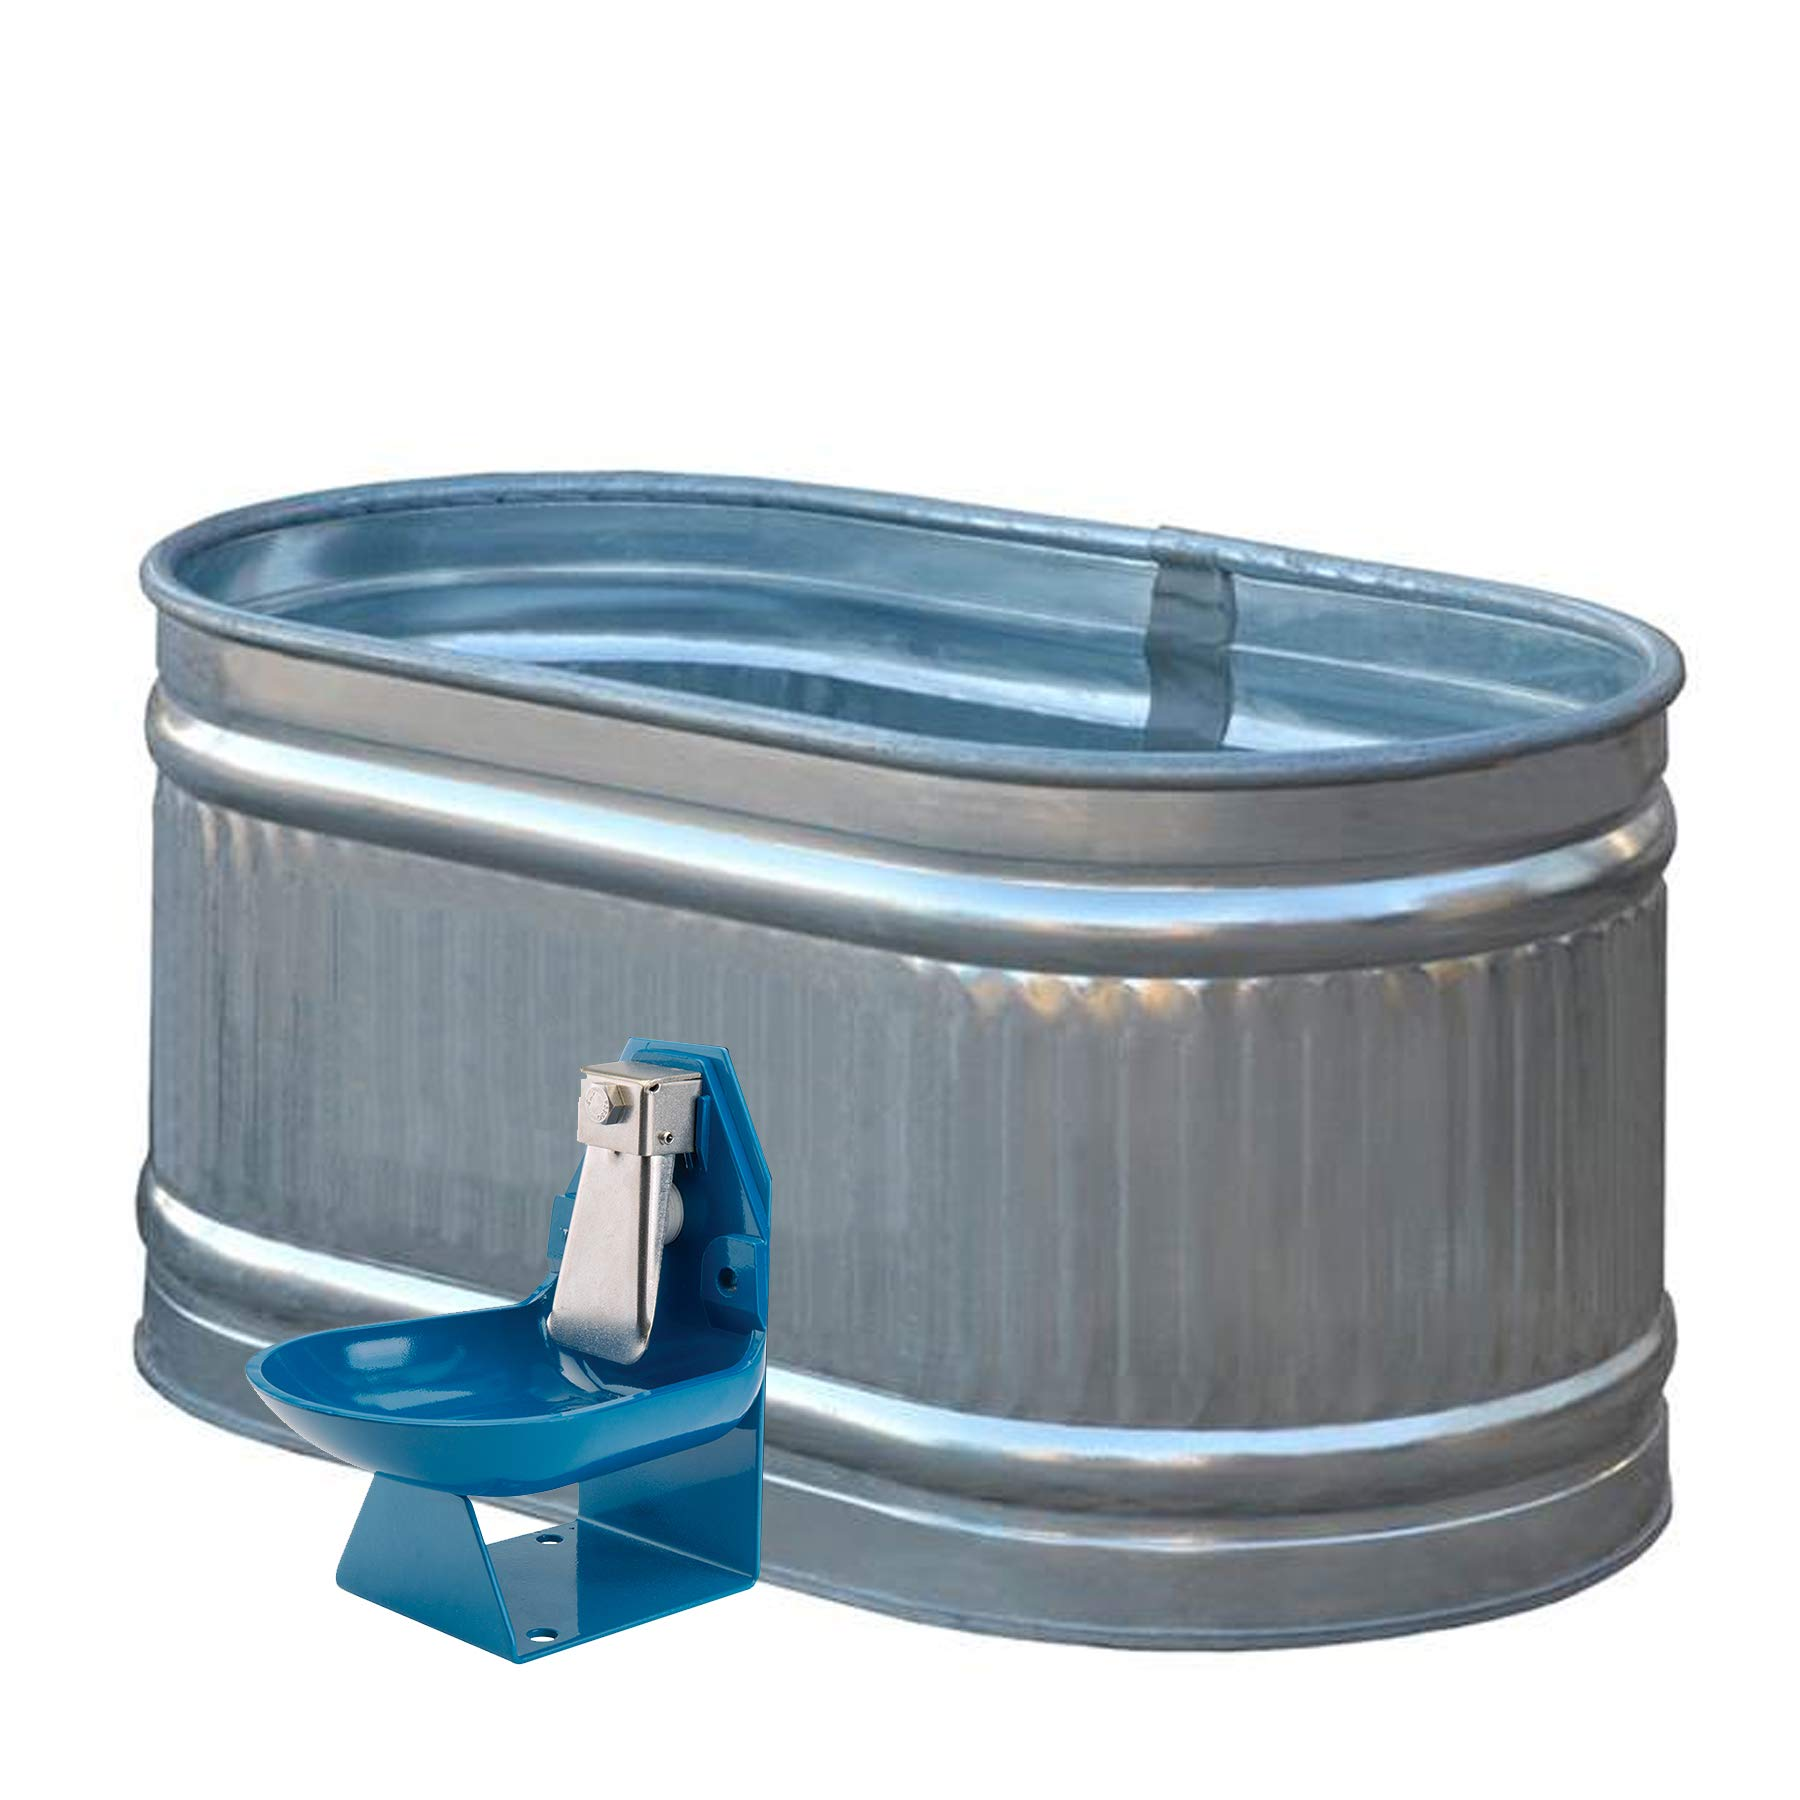 Trojan Speciality Products Gravity Flow Barrel Pig Waterer by Trojan Speciality Products